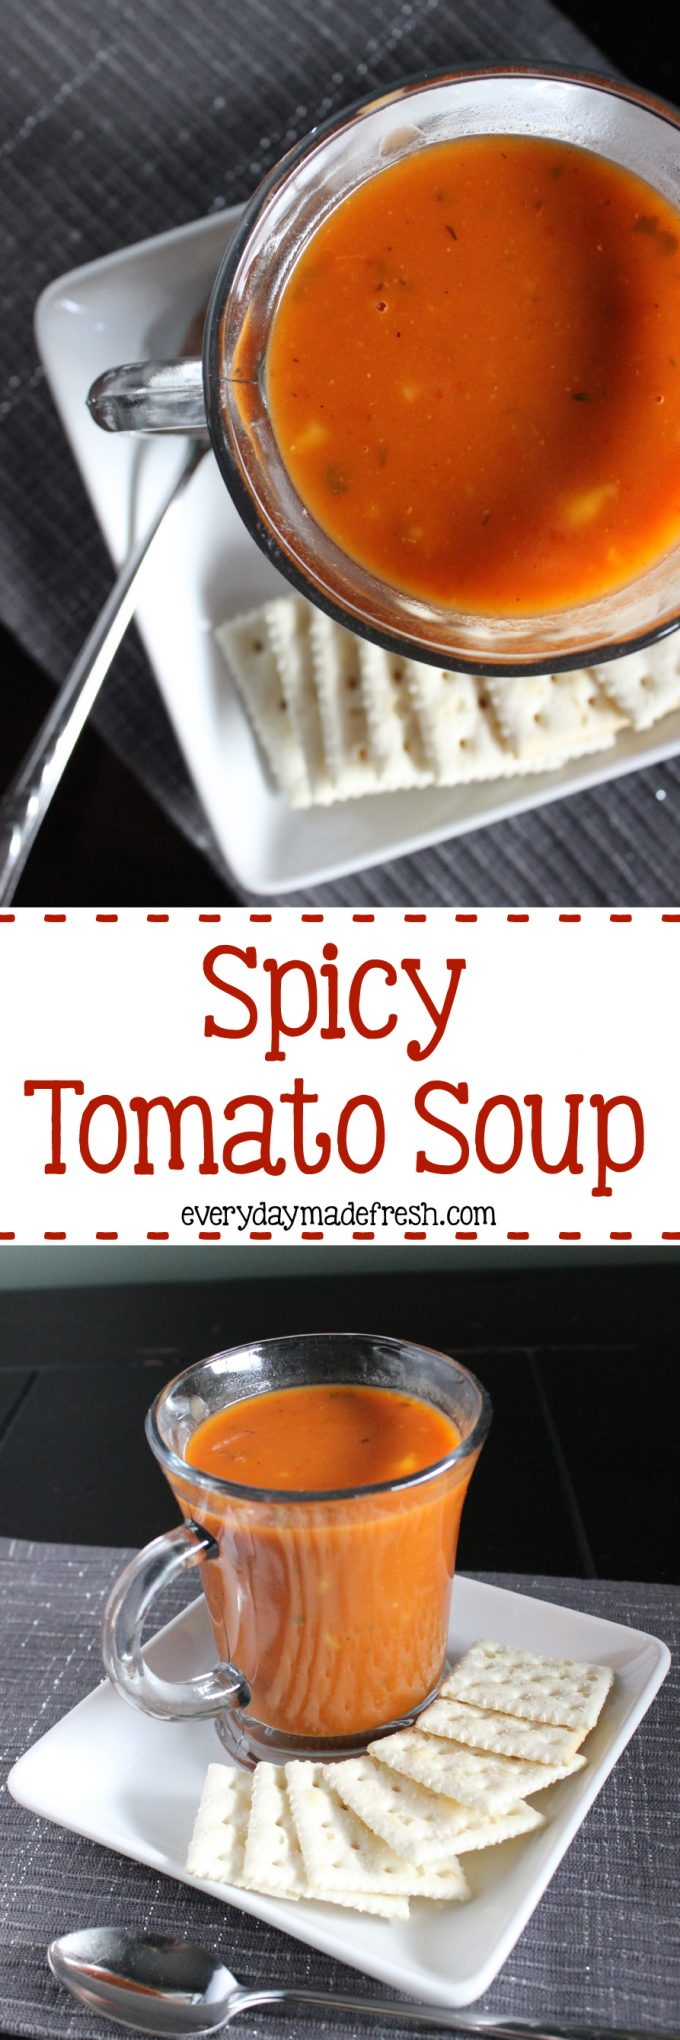 Spicy Tomato Soup - Everyday Made Fresh